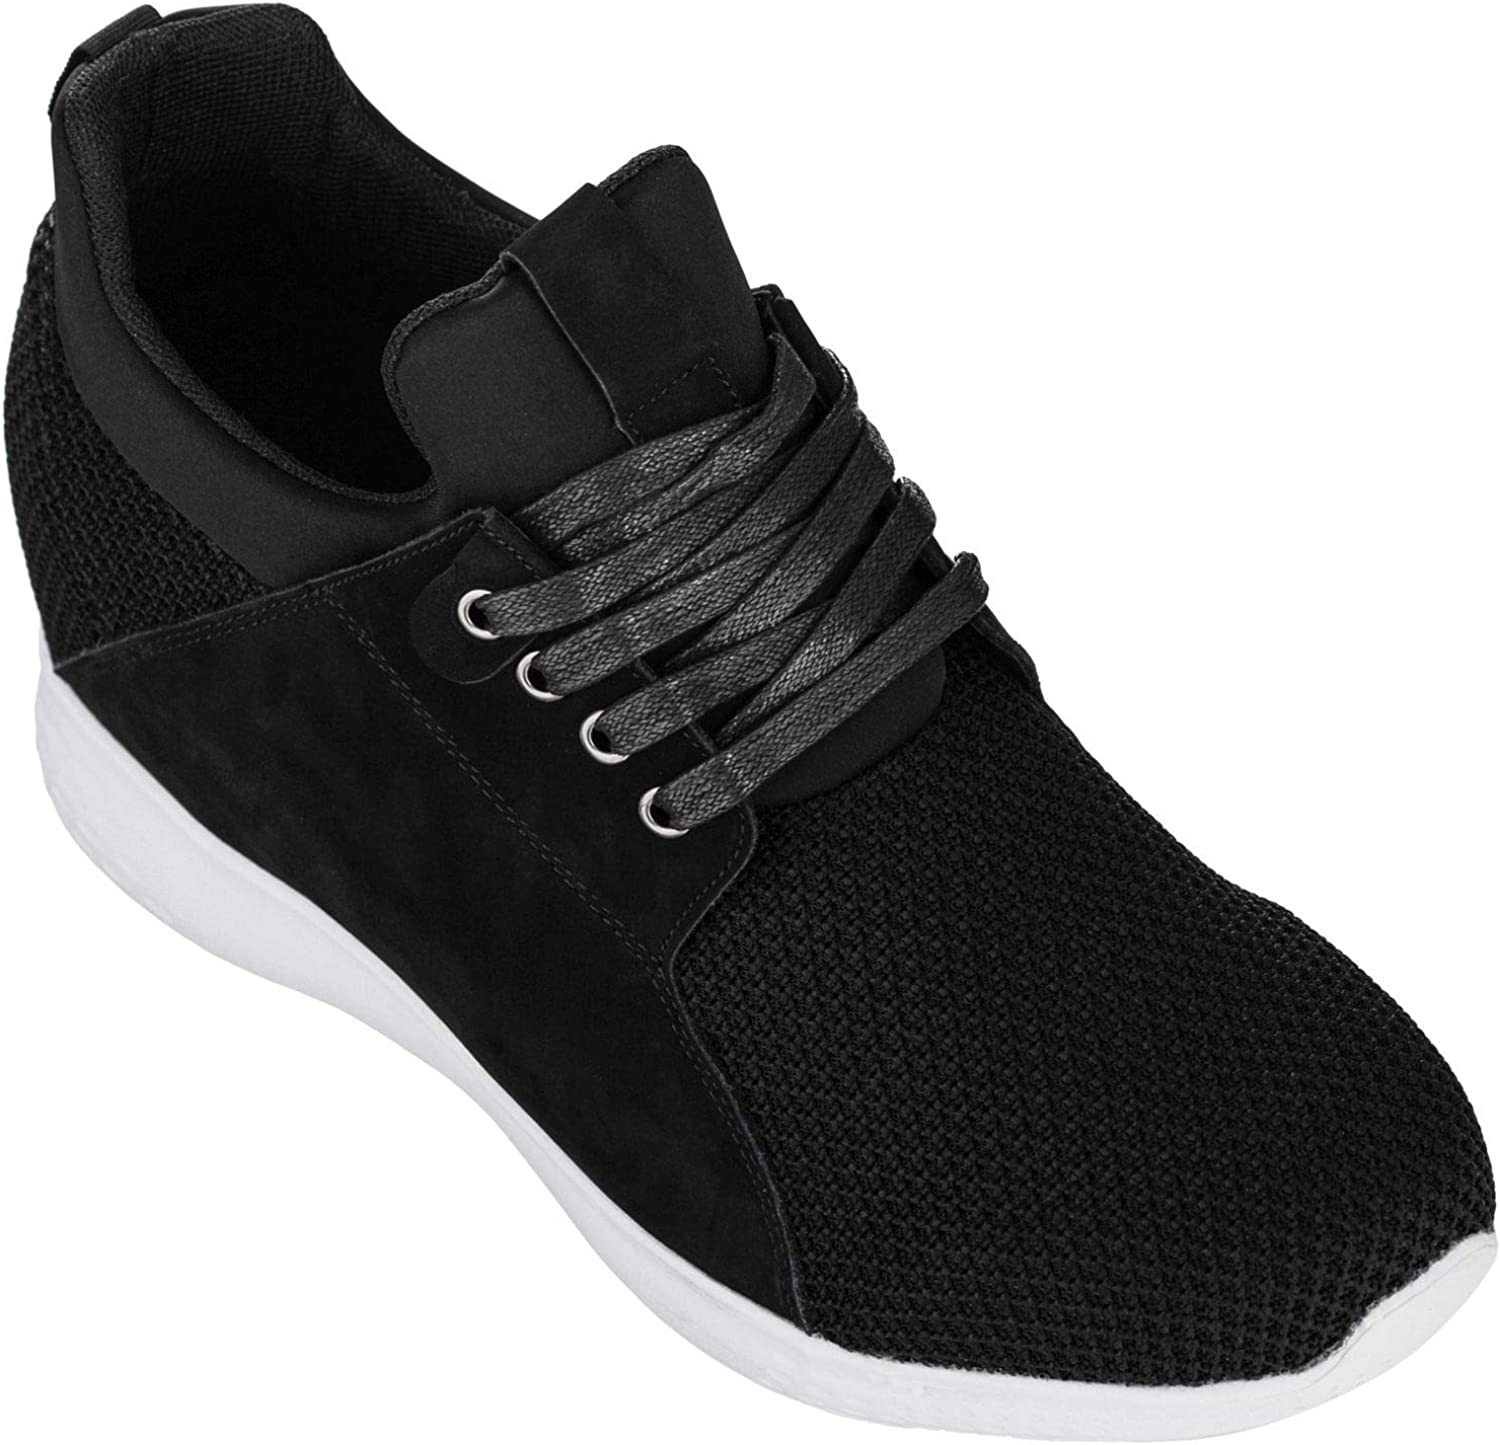 CALTO Men's Invisible Height Increasing Elevator Trainer shoes - Black Mesh Lace-up Lightweight Fashion Sneakers - 3.2 Inches Taller - H71922